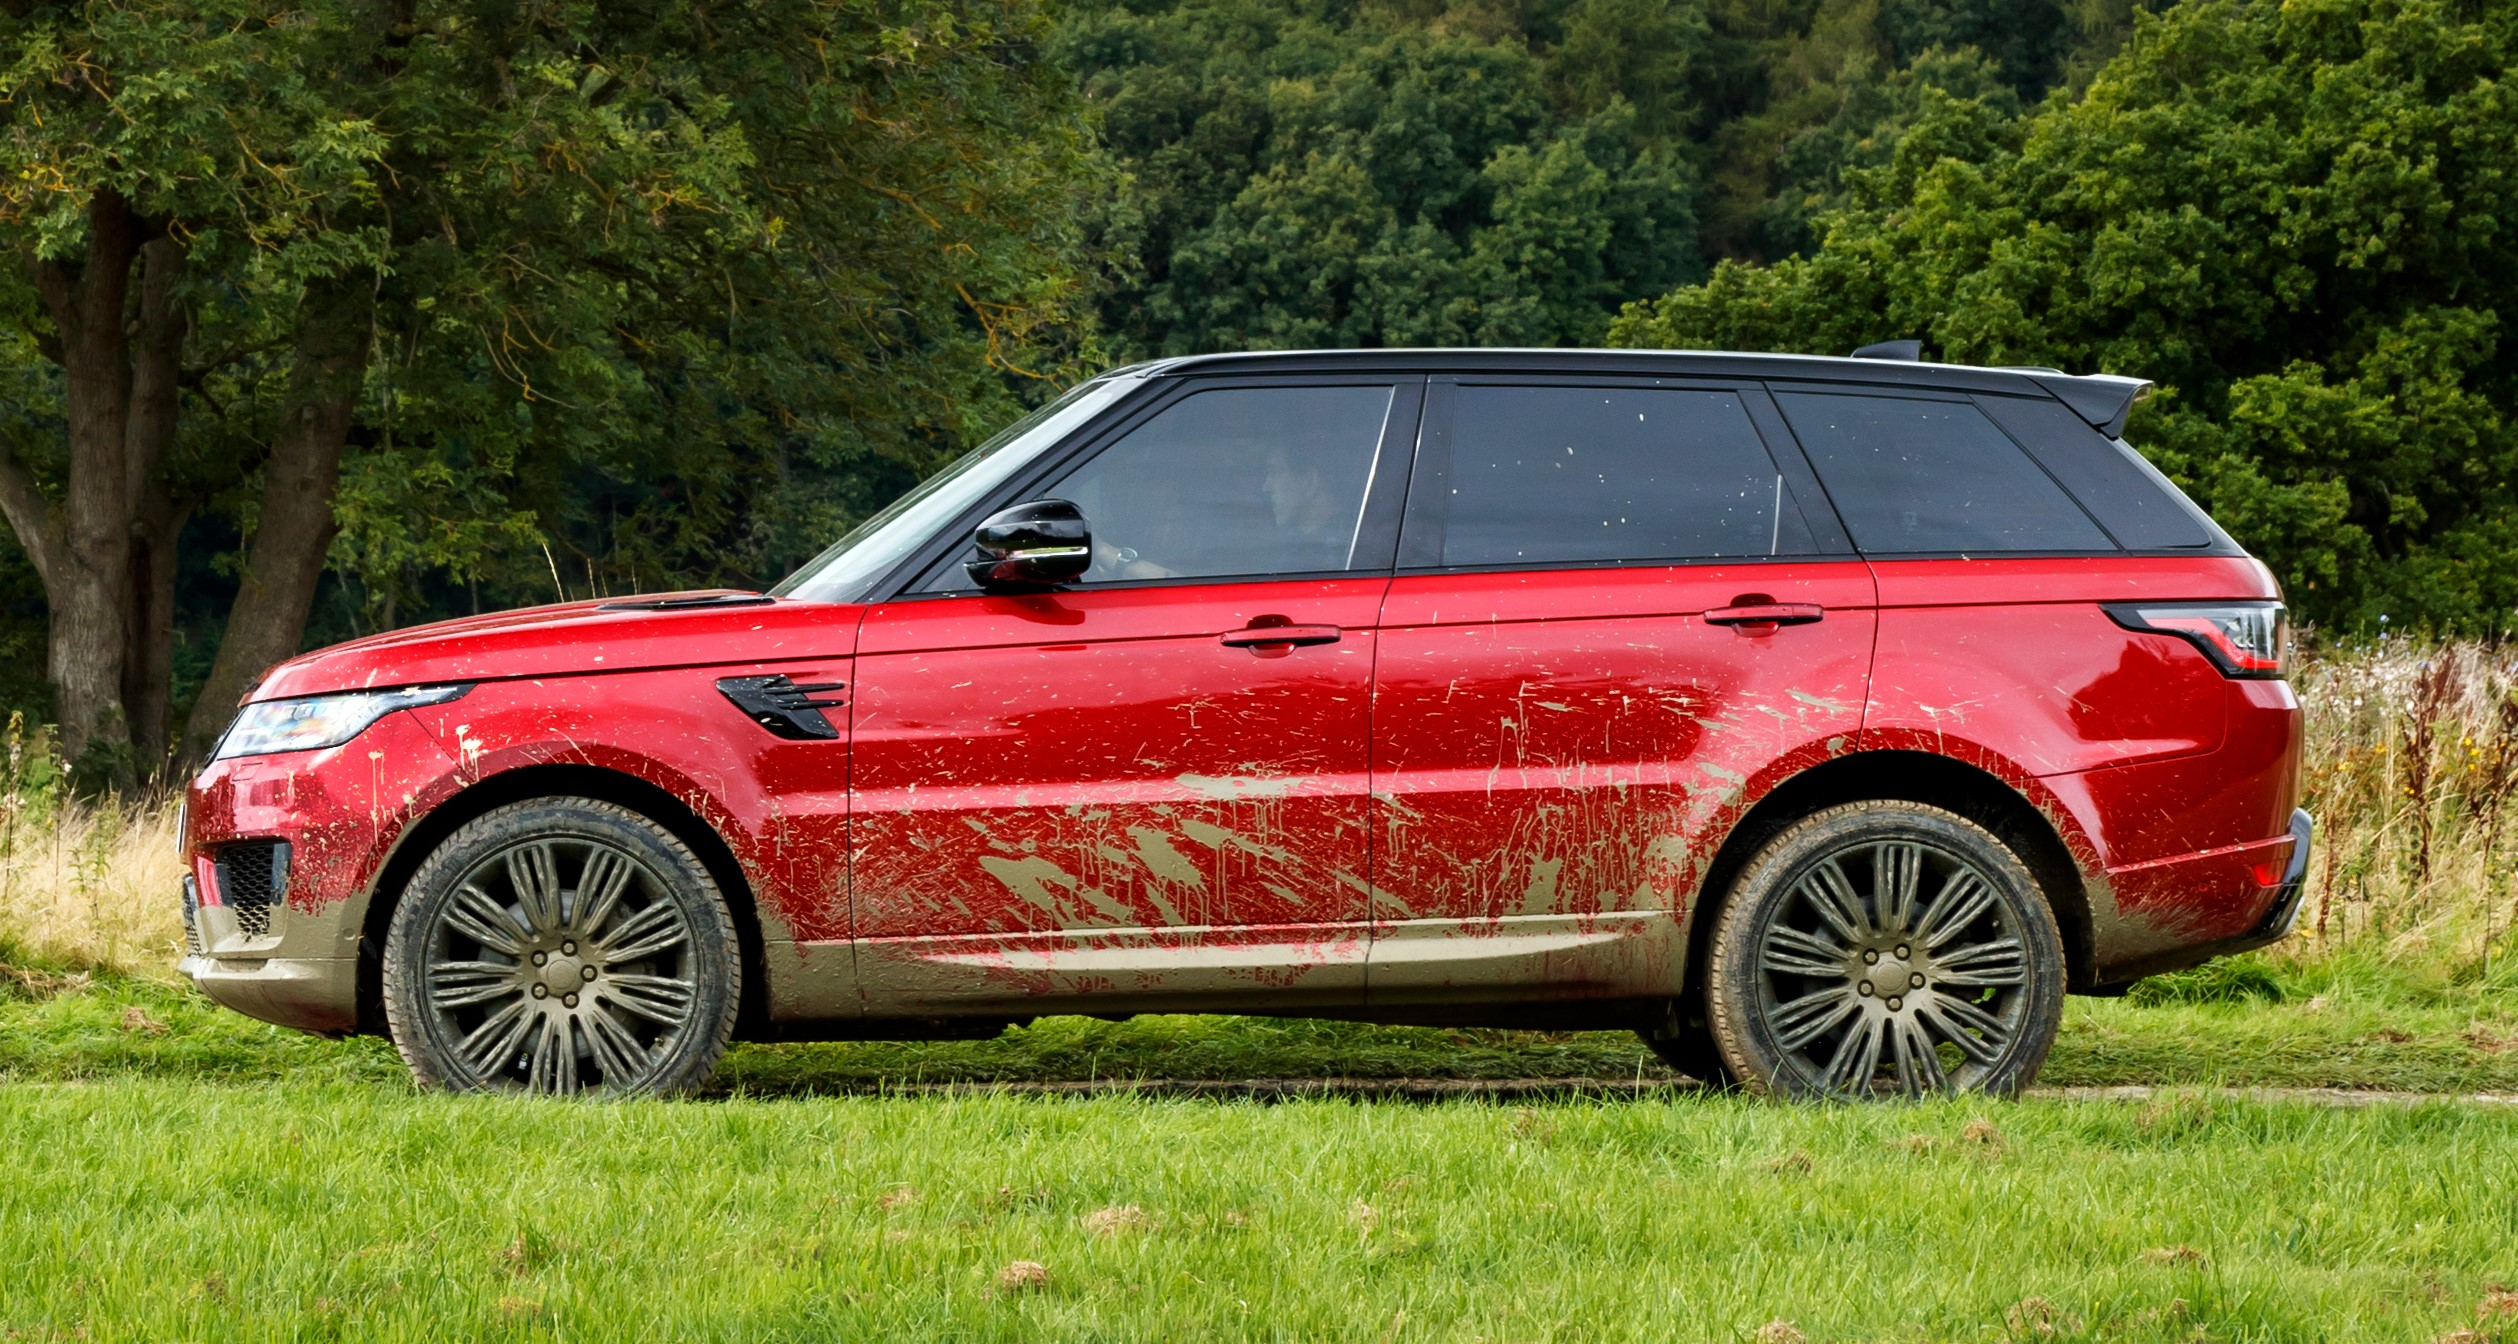 RANGE ROVER SPORT TO FEATURE SIGNIFICANT DESIGN AND TECHNOLOGY